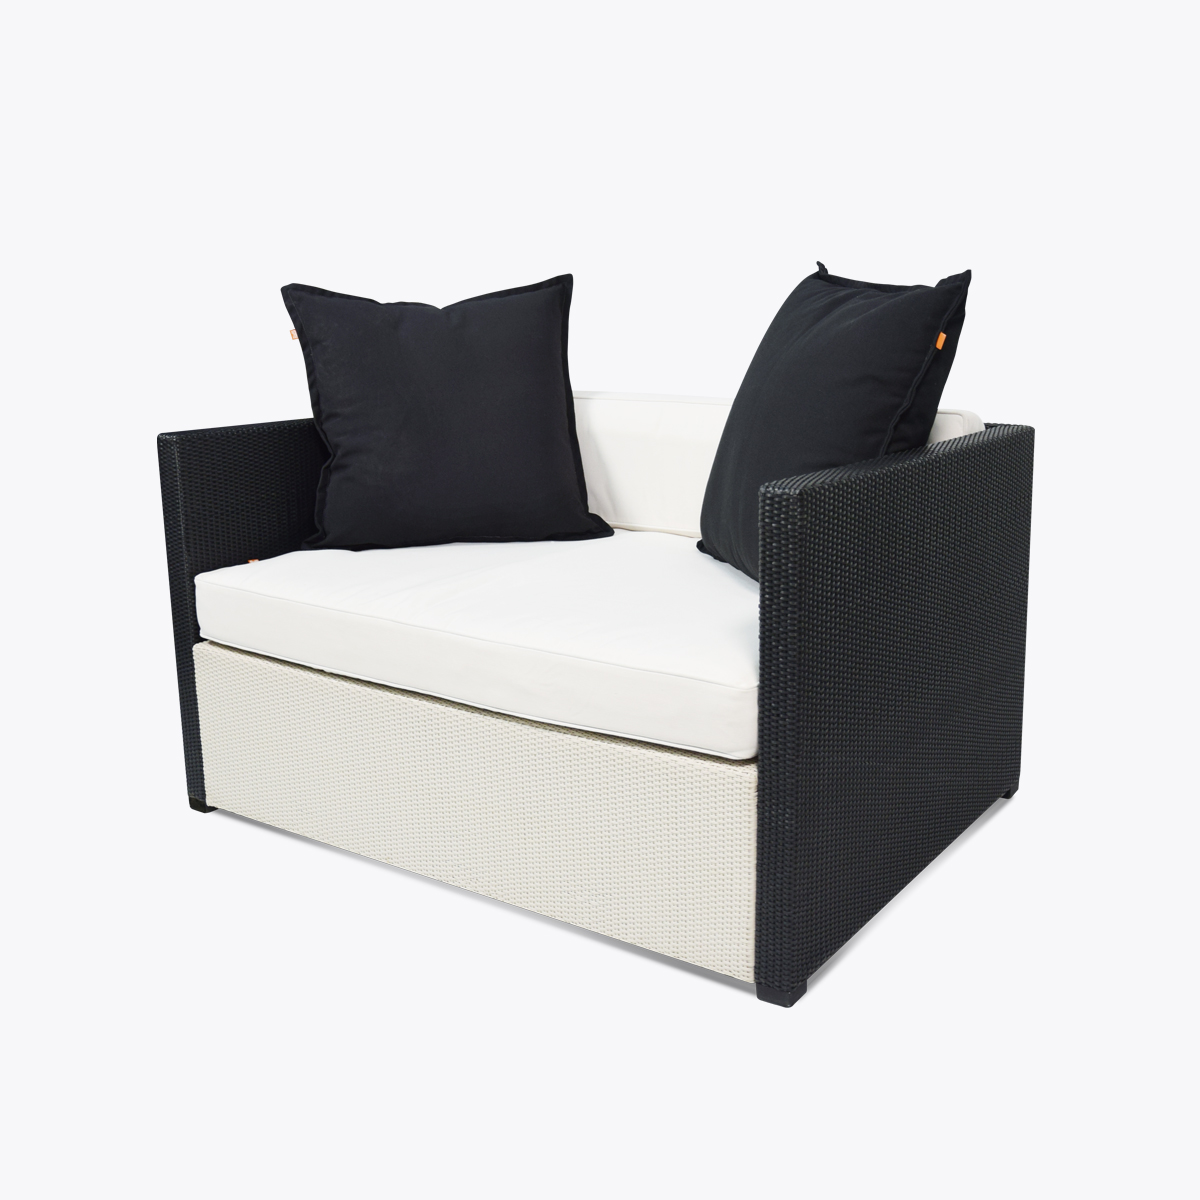 mietshop qdrei rund um events. Black Bedroom Furniture Sets. Home Design Ideas